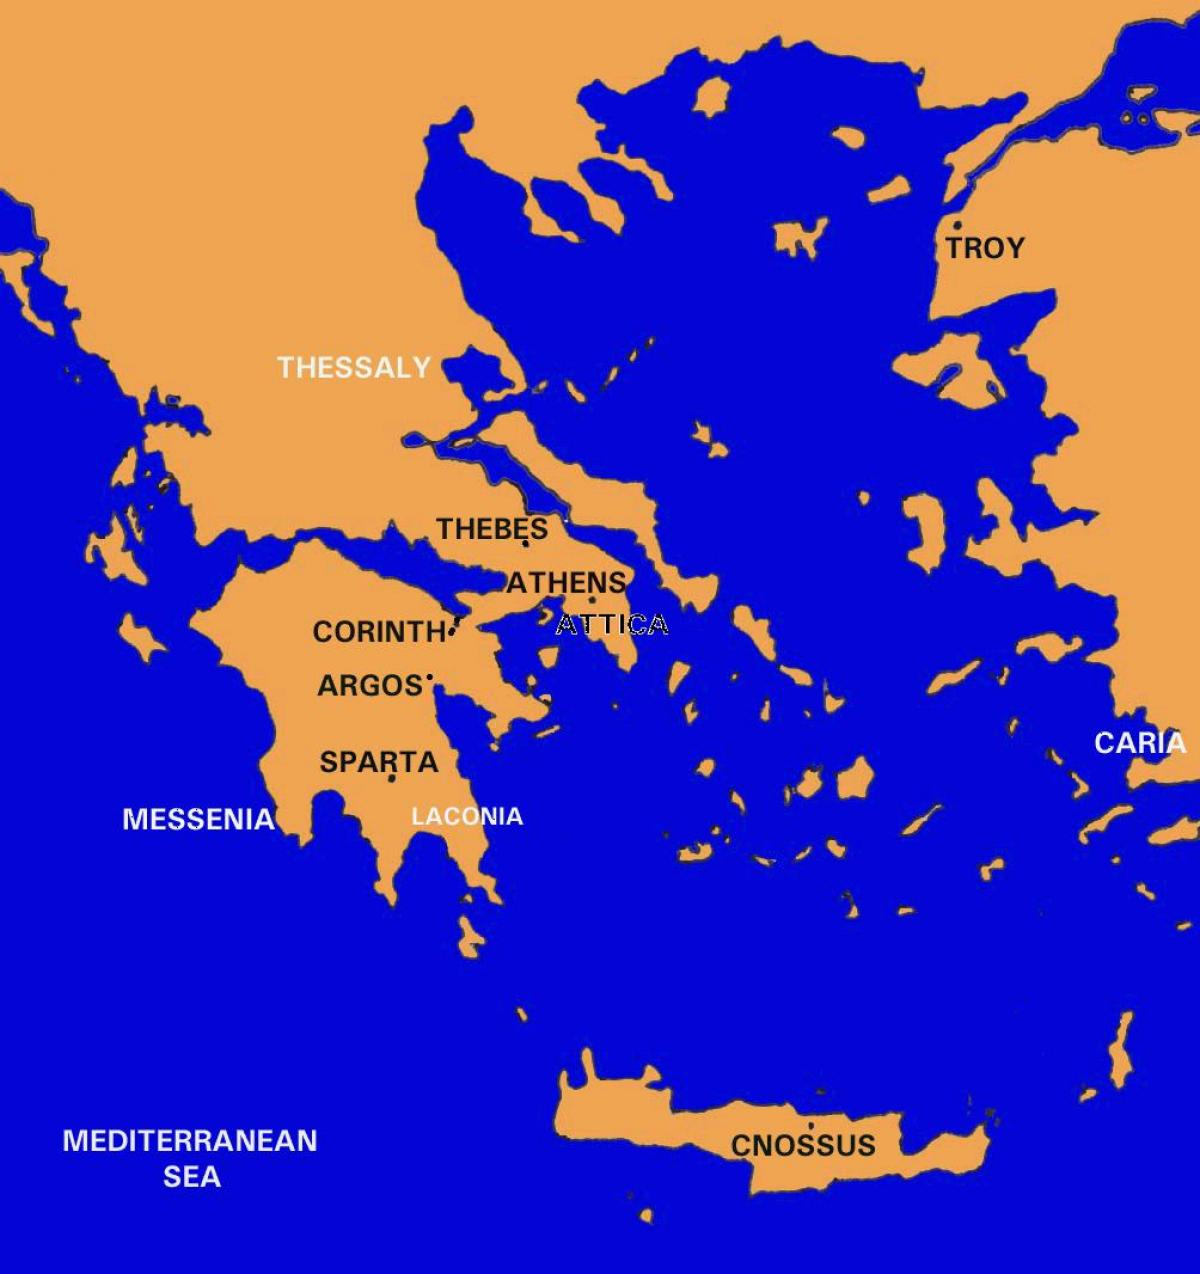 istanbul map of europe, vienna map of europe, wallachia map of europe, dardanelles map of europe, atlas map of europe, nicosia map of europe, macedonia map of europe, nazi germany map of europe, paris map of europe, byzantine empire map of europe, holy roman empire map of europe, prussia map of europe, rome map of europe, foundation map of europe, waterloo map of europe, baku map of europe, sicily map of europe, crete map of europe, amsterdam map of europe, slovakia map of europe, on image of europe map sparta